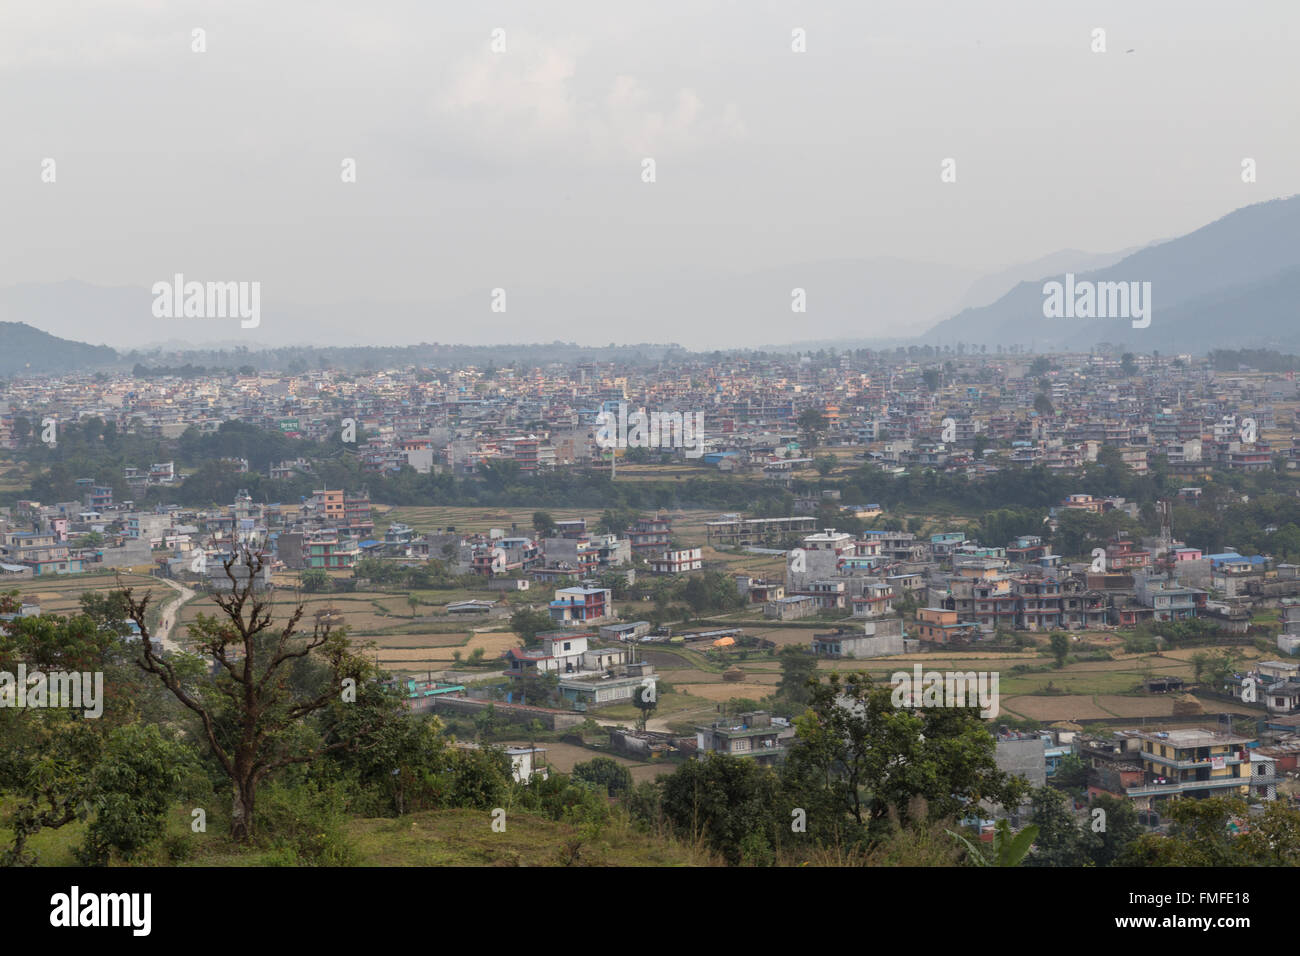 Aerial view over the Nepalese city Pokhara. - Stock Image